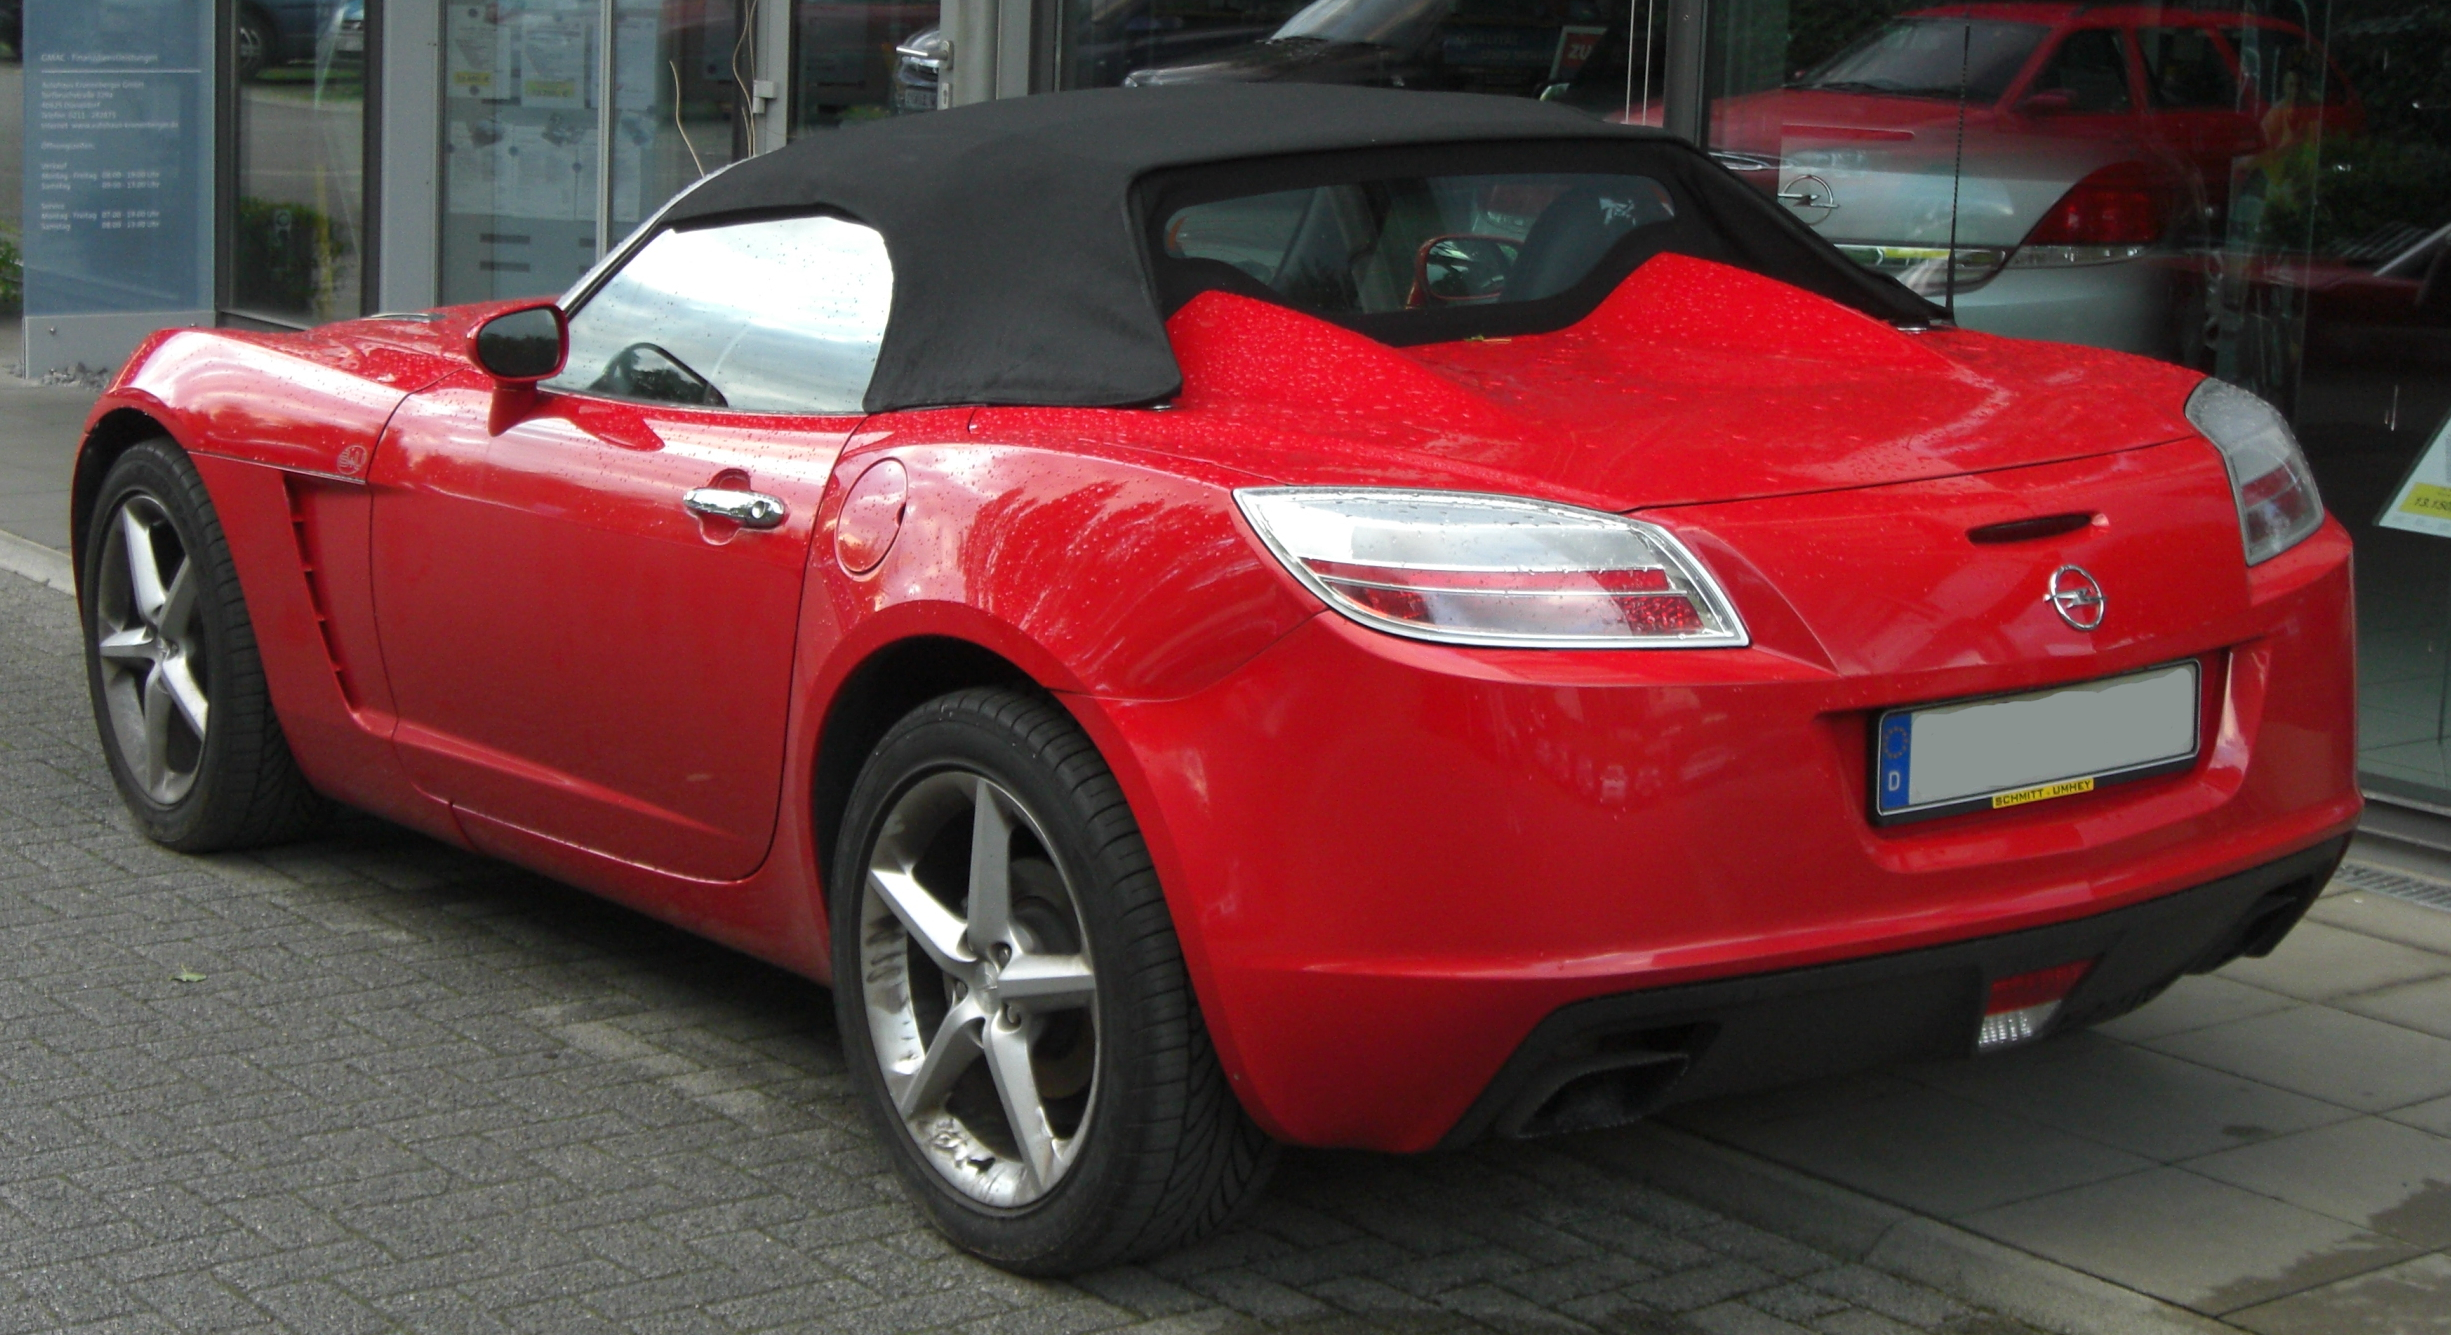 File:Opel GT rear.JPG - Wikimedia Commons